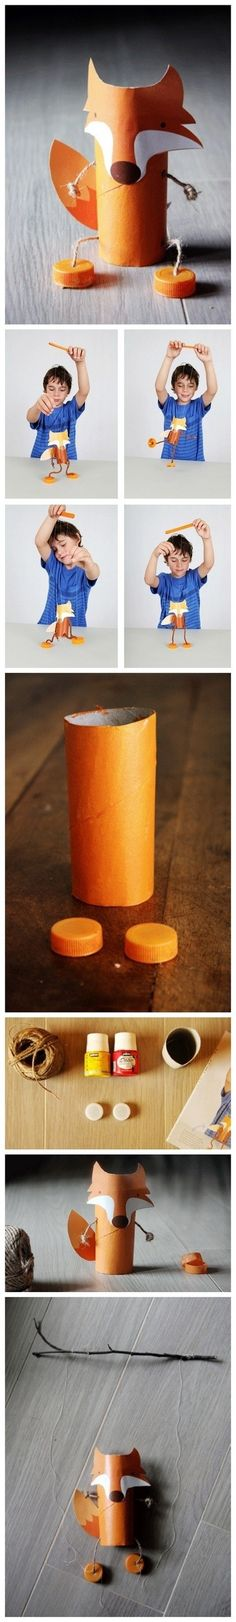 Toilet Paper Roll Crafts - Get creative! These toilet paper roll crafts are a great way to reuse these often forgotten paper products. You can use toilet paper rolls for anything! creative DIY toilet paper roll crafts are fun and easy to make. Projects For Kids, Diy For Kids, Craft Projects, Crafts For Kids, Arts And Crafts, Craft Ideas, Summer Crafts, Toilet Paper Roll Crafts, Paper Crafts